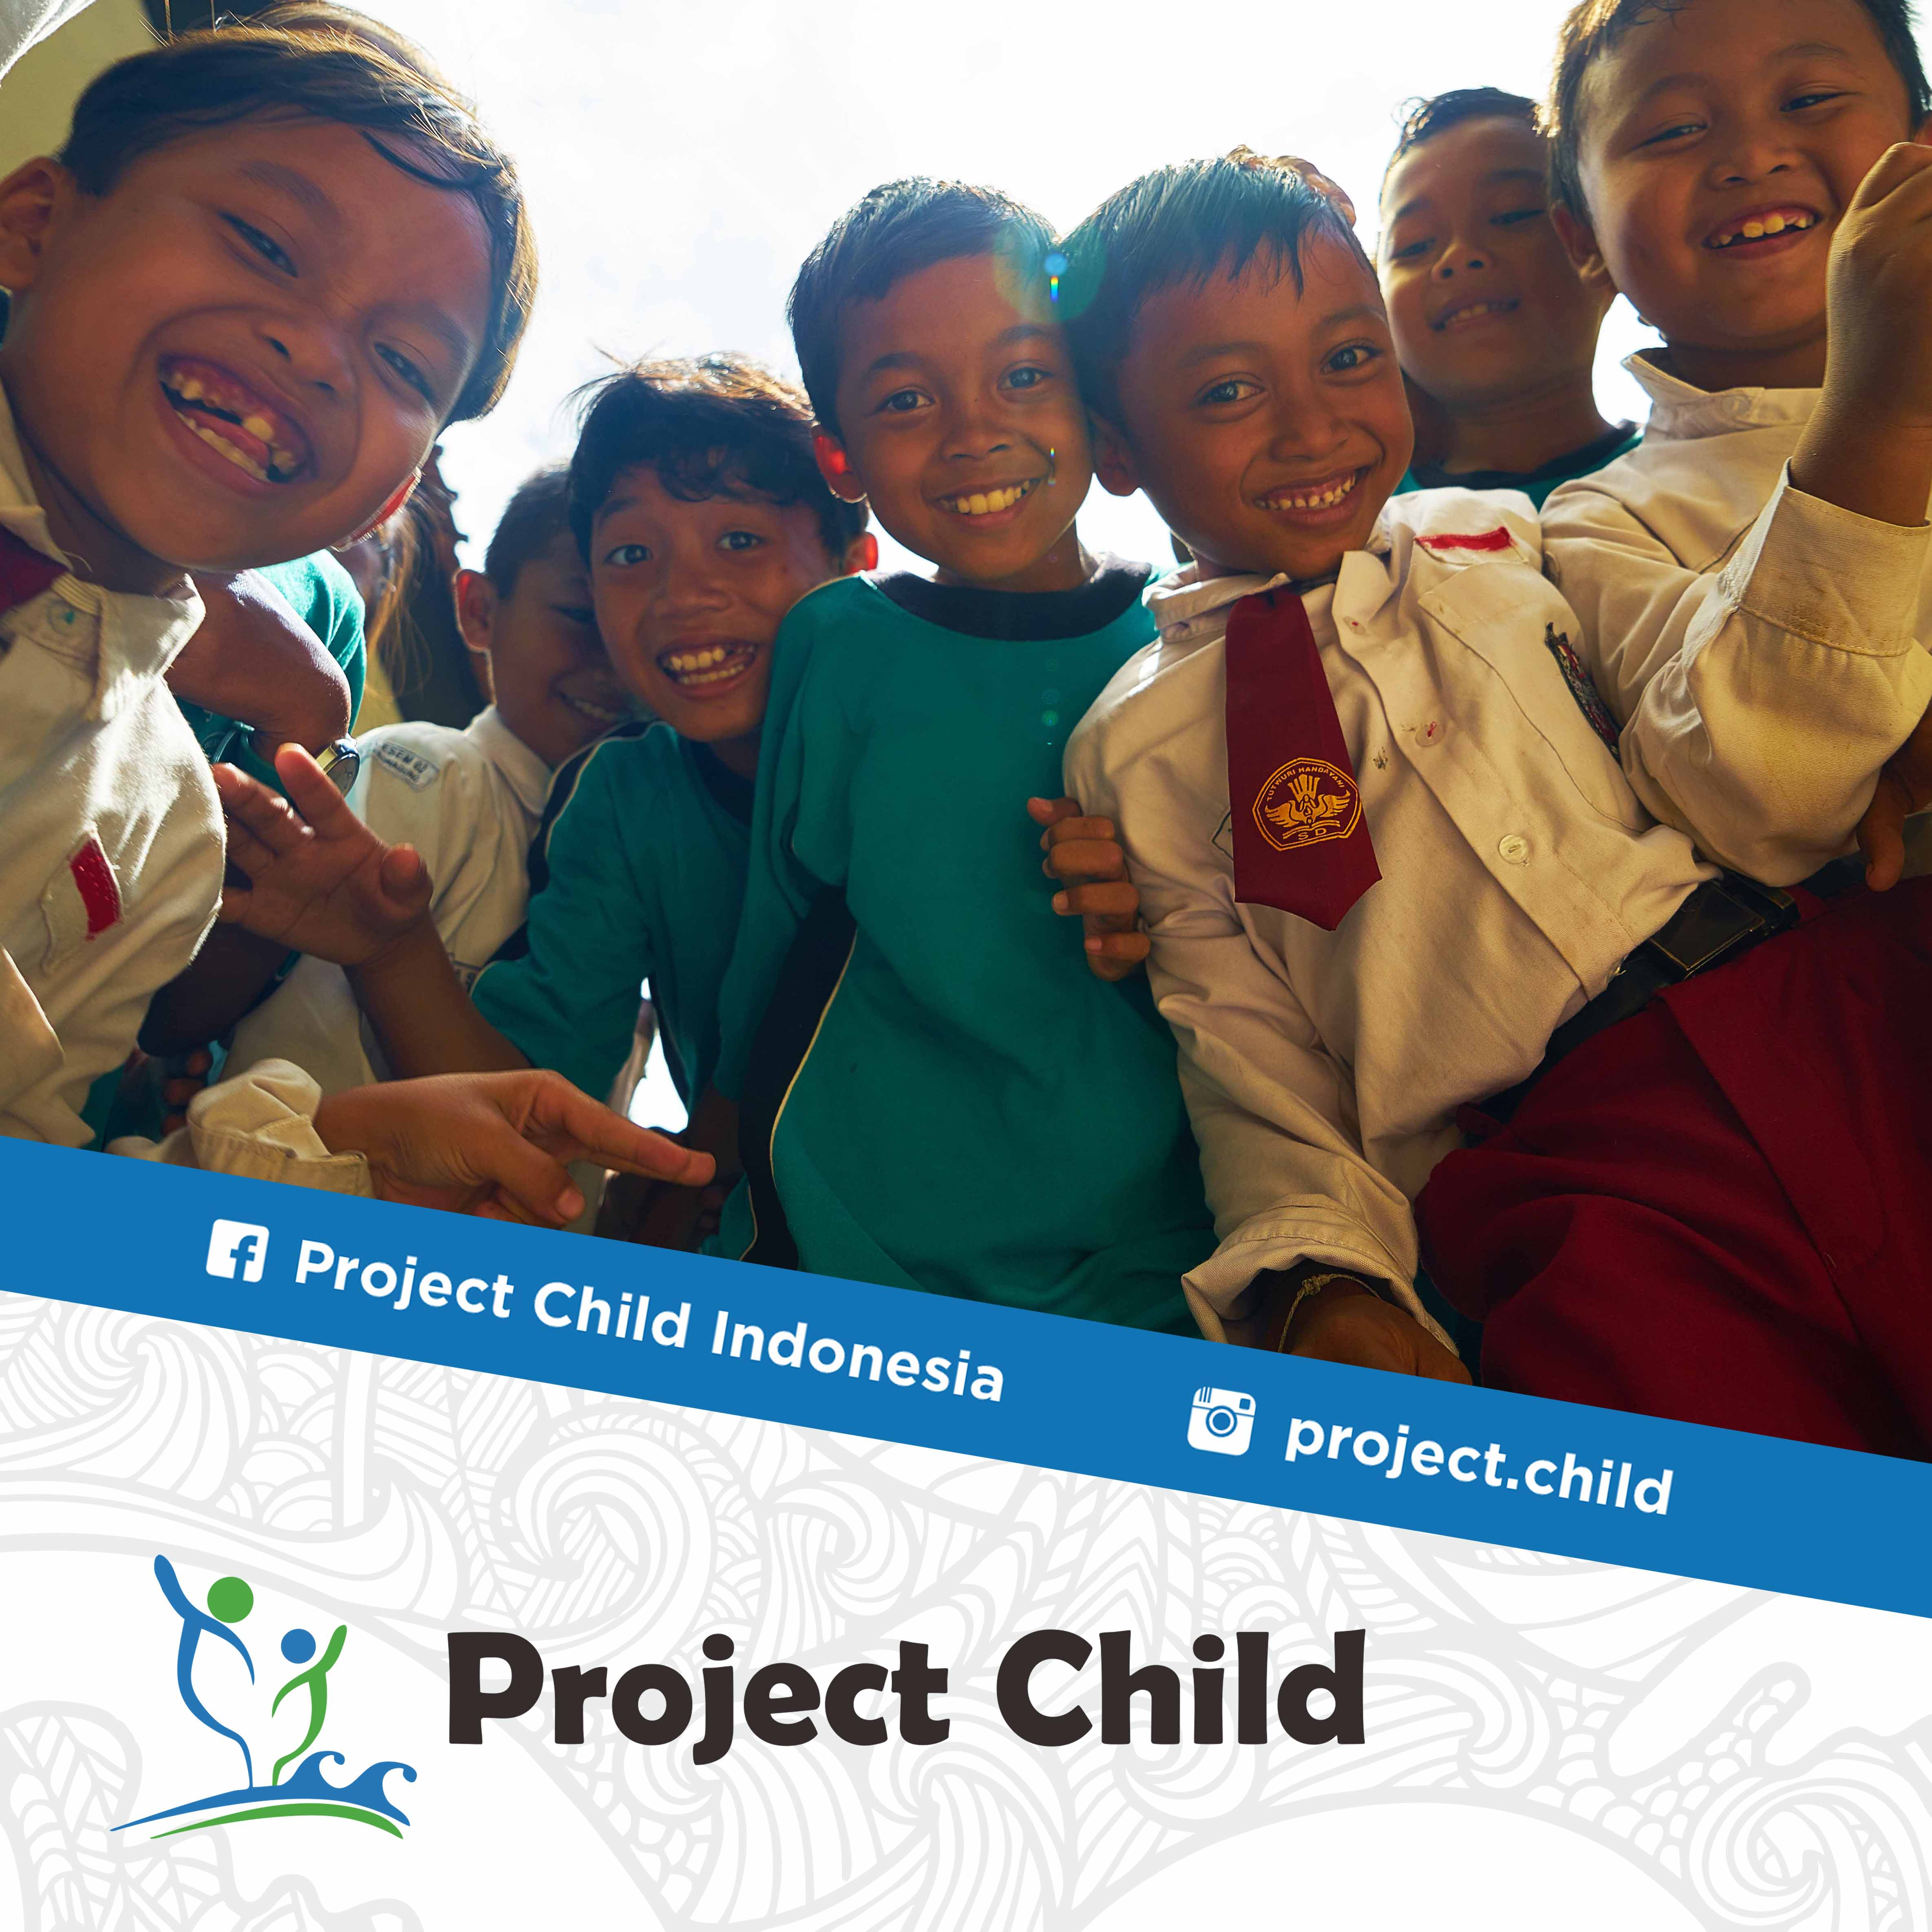 Project Child